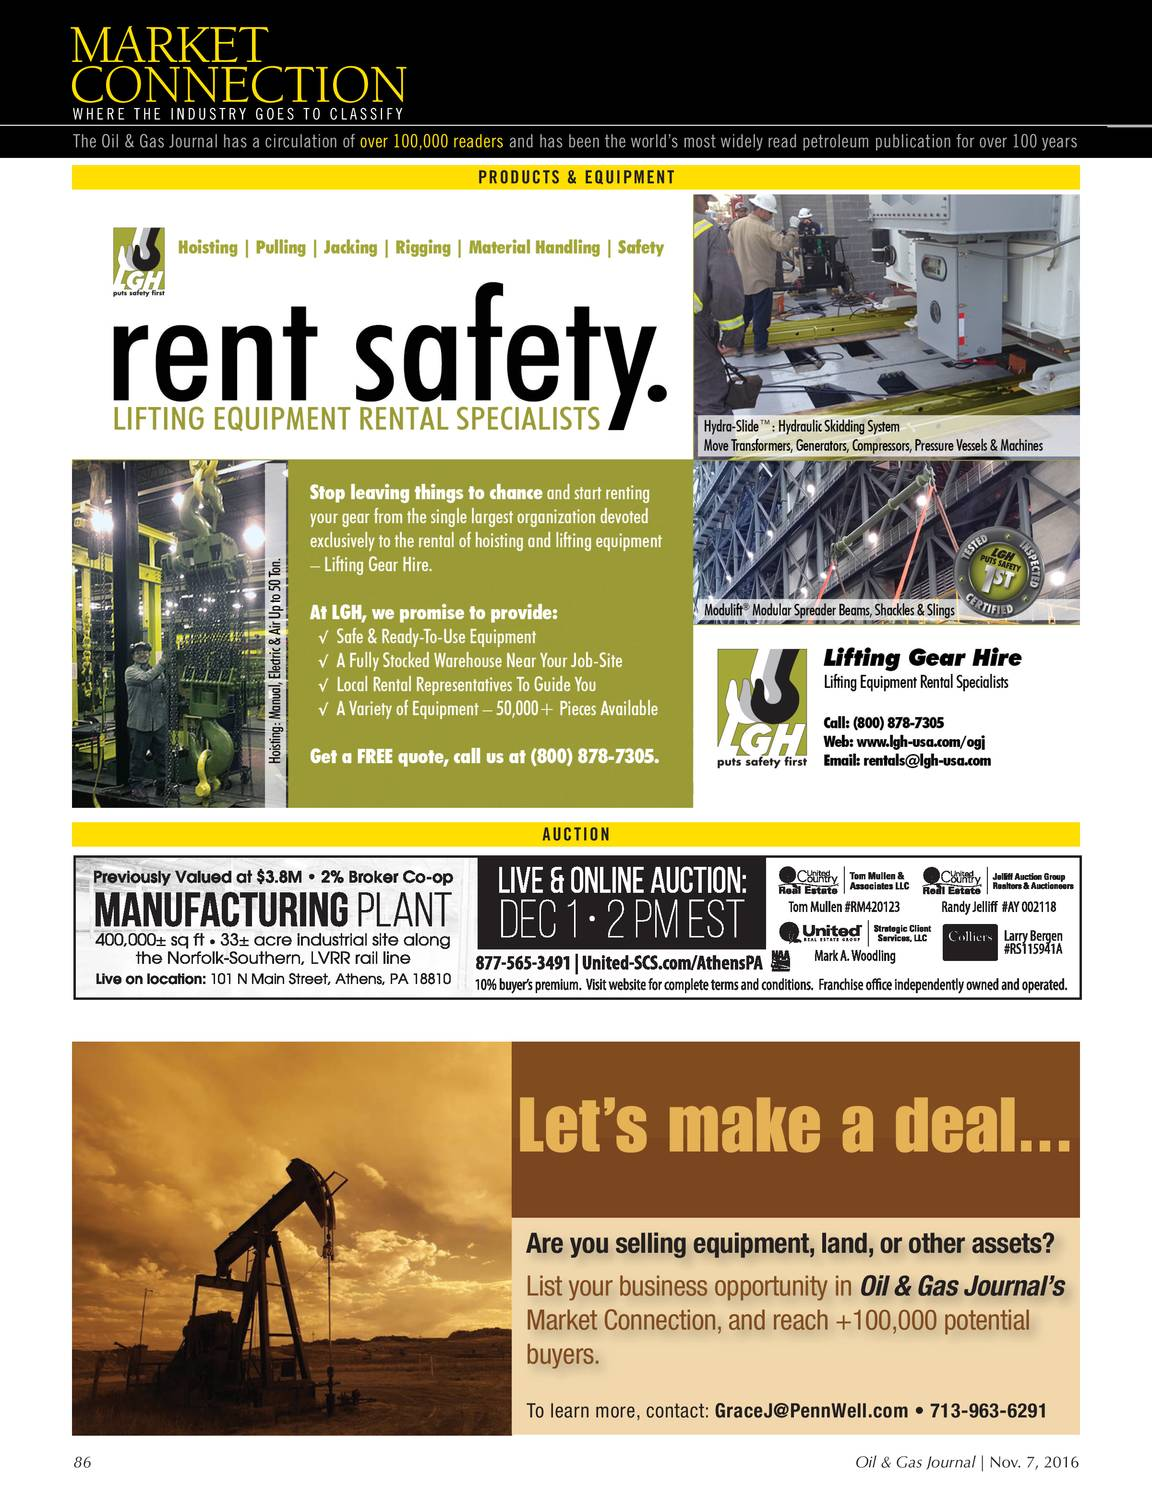 Oil & Gas Journal - November 07, 2016 - page 85